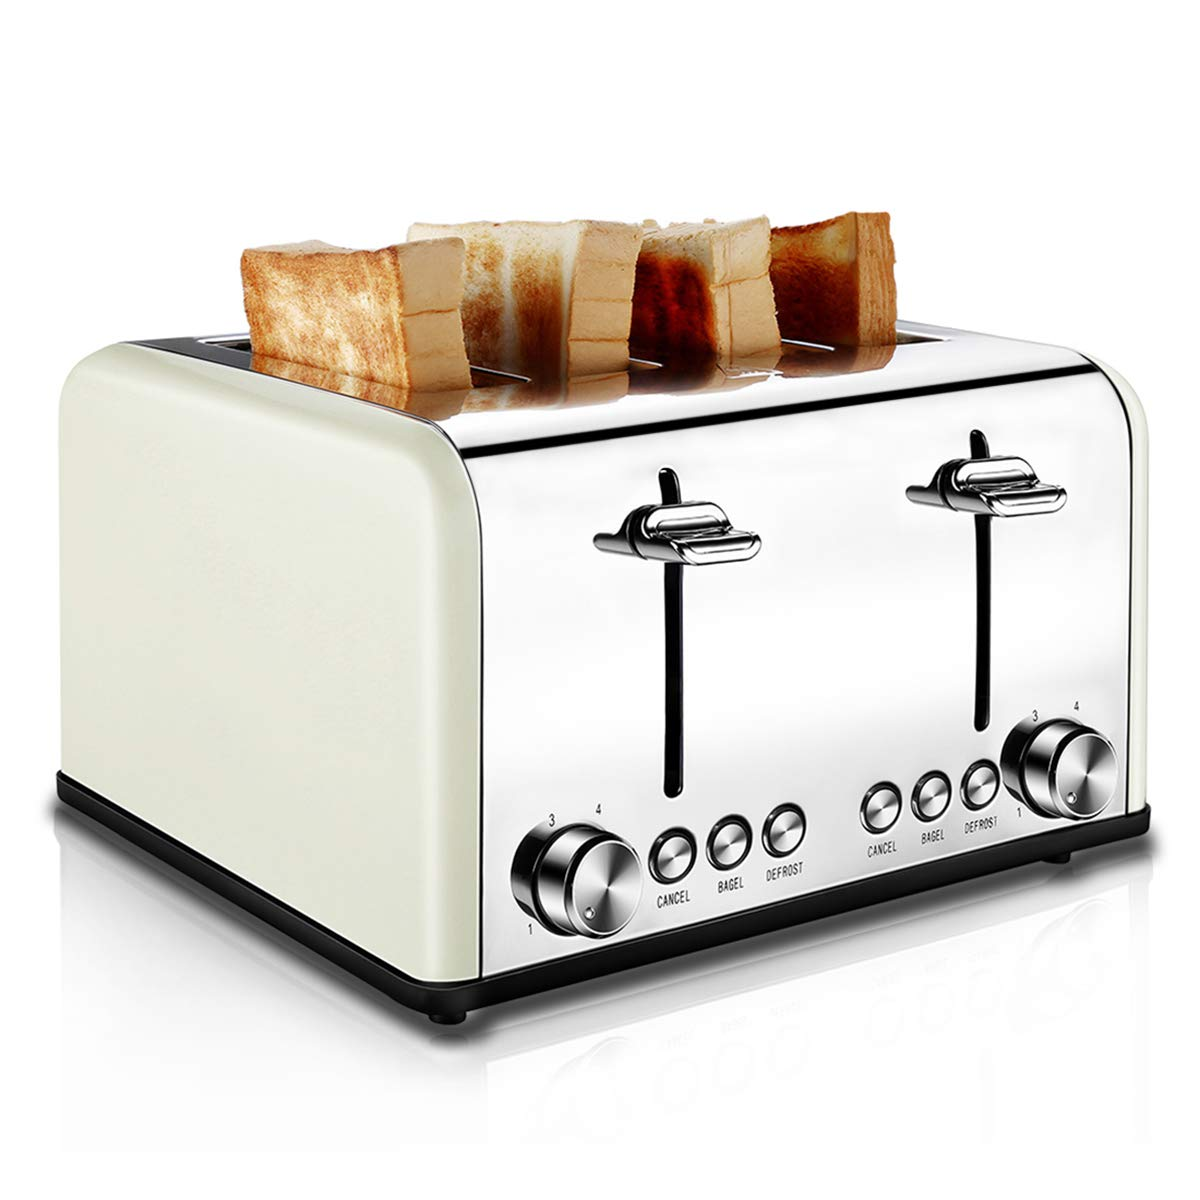 Toaster 4 Slice, CUSIBOX Extra Wide Slots Stainless Steel Toaster with Bagel Defrost Cancel Function, 6 Bread Shade Settings, Removable Crumb Tray, 1650W, Cream